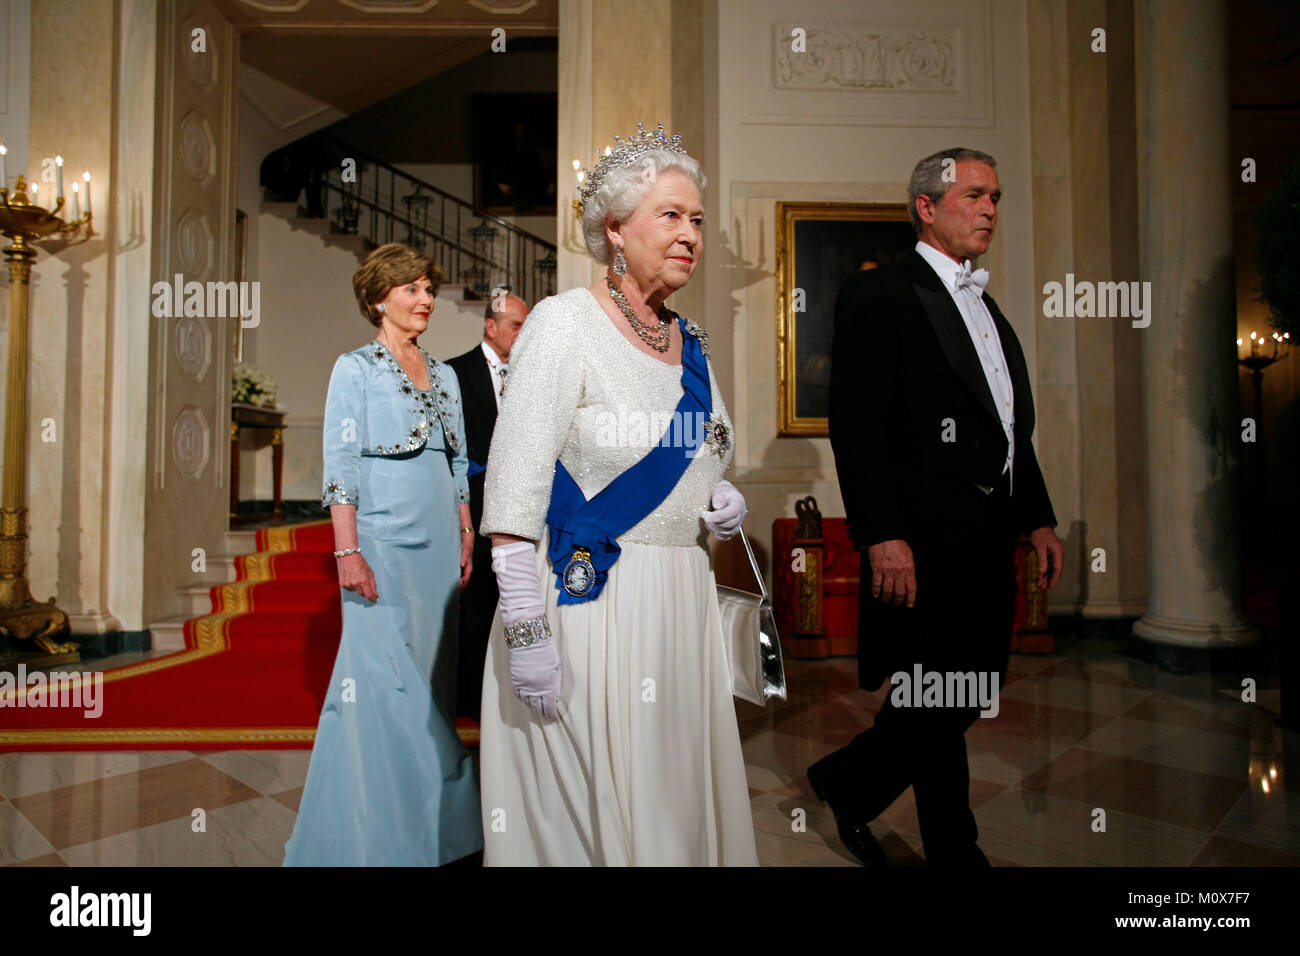 Queen Elizabeth Ii Of The United Kingdom And President George W